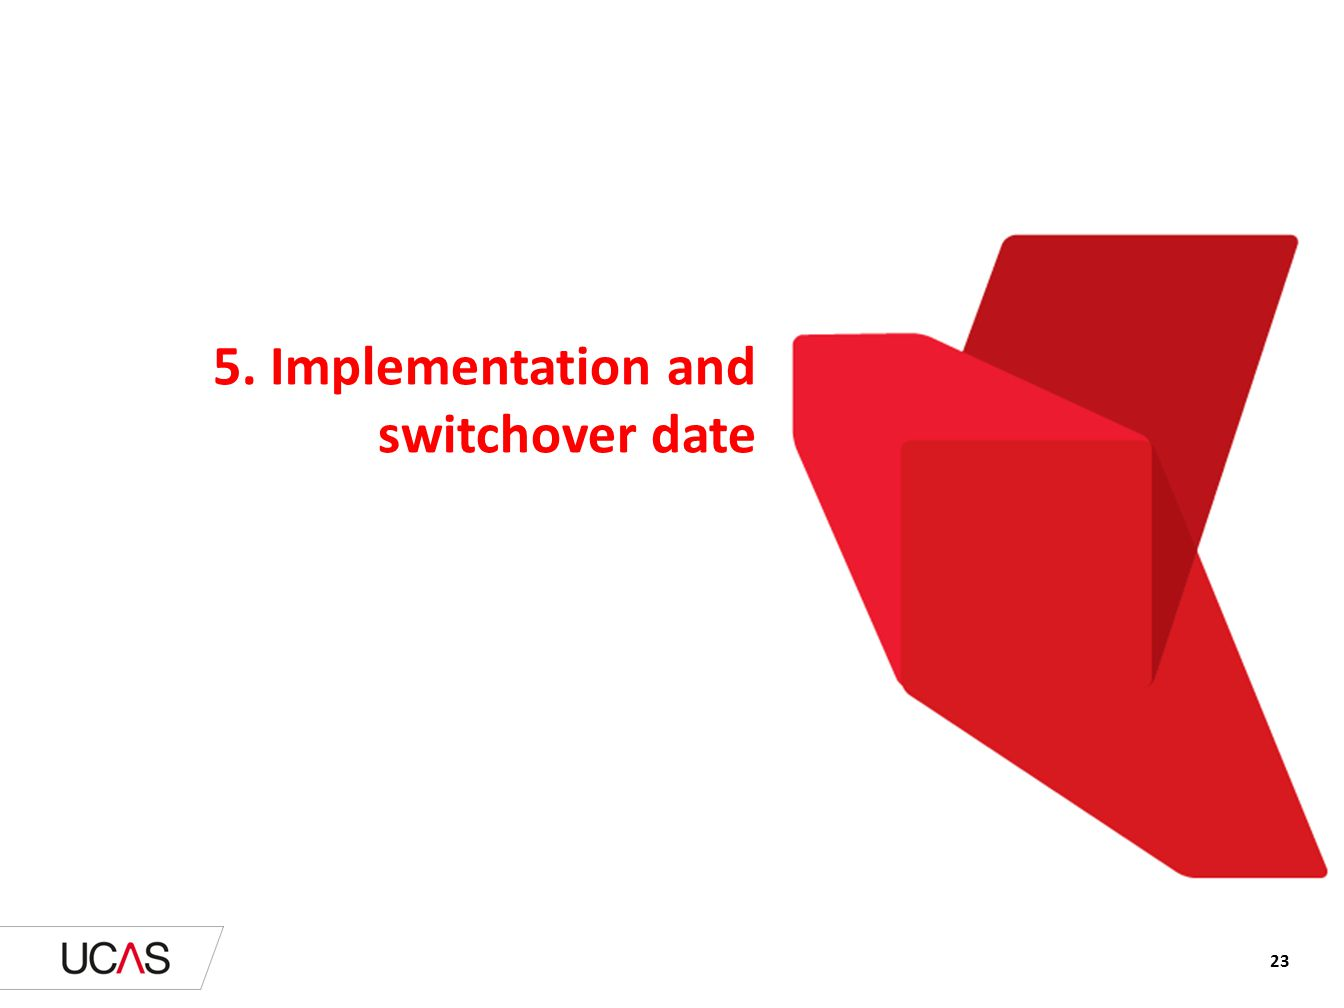 5. Implementation and switchover date